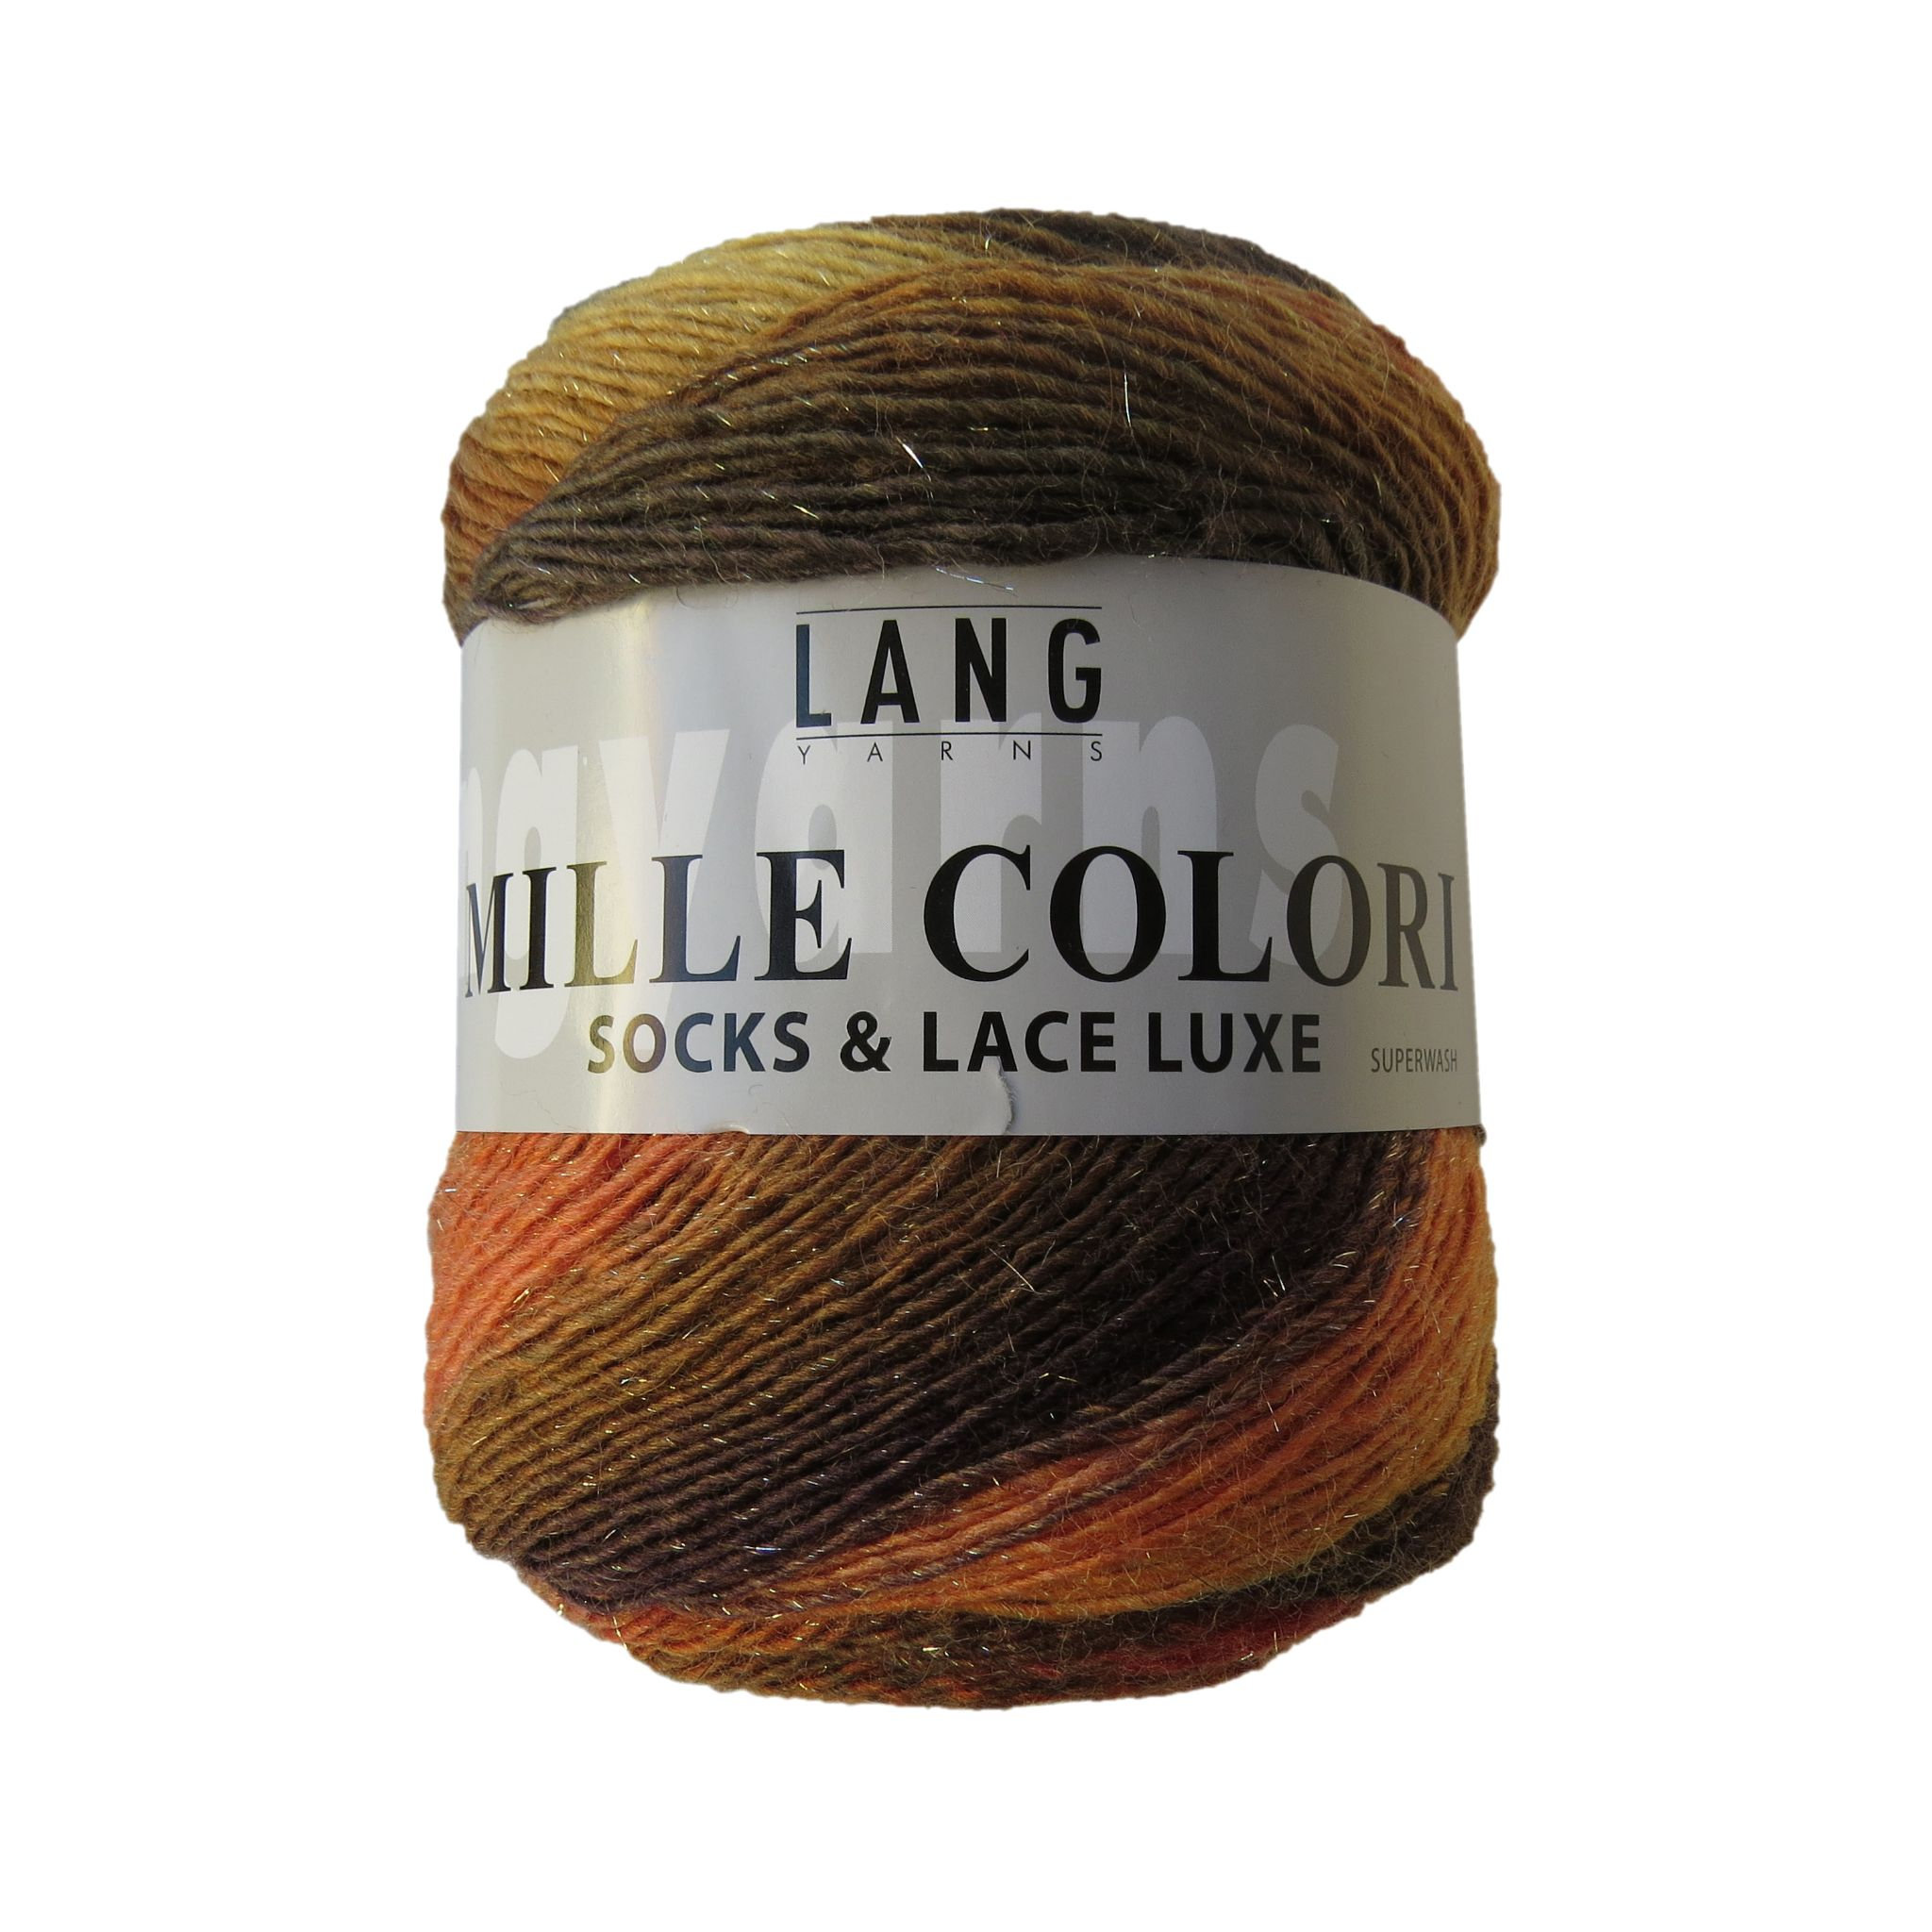 Lang Yarns MILLE COLORI Socks & Lace LUXE 68